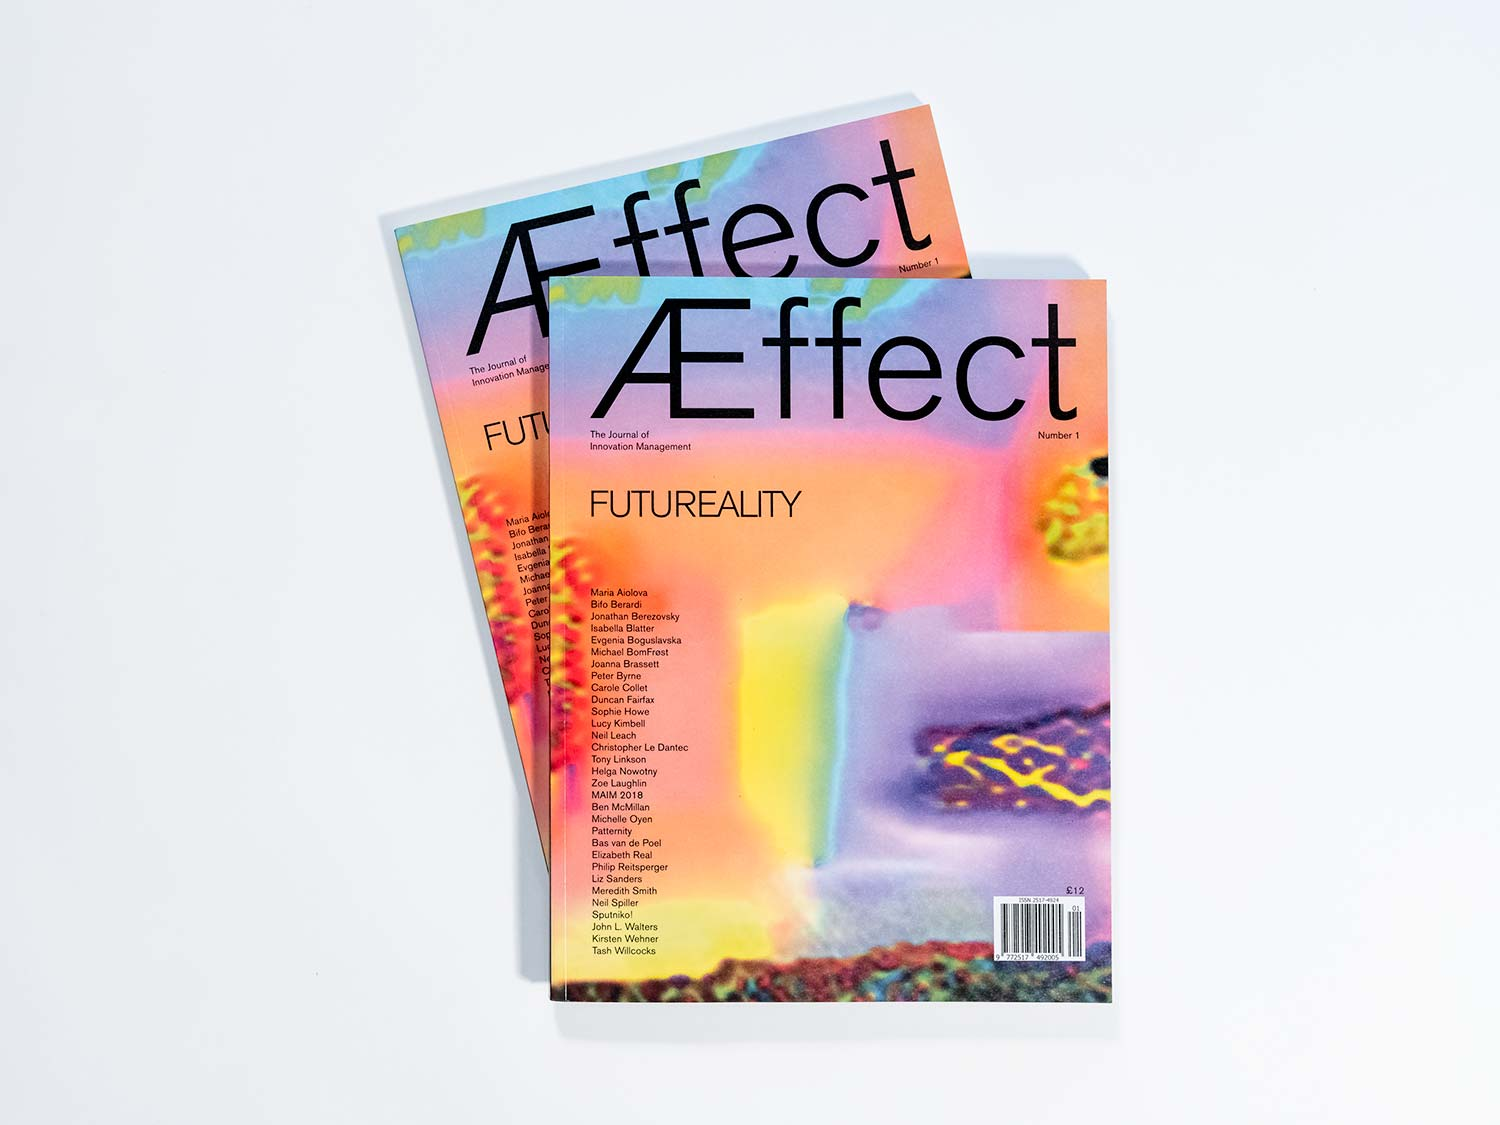 The picture shows the cover of the Æffect Journal.